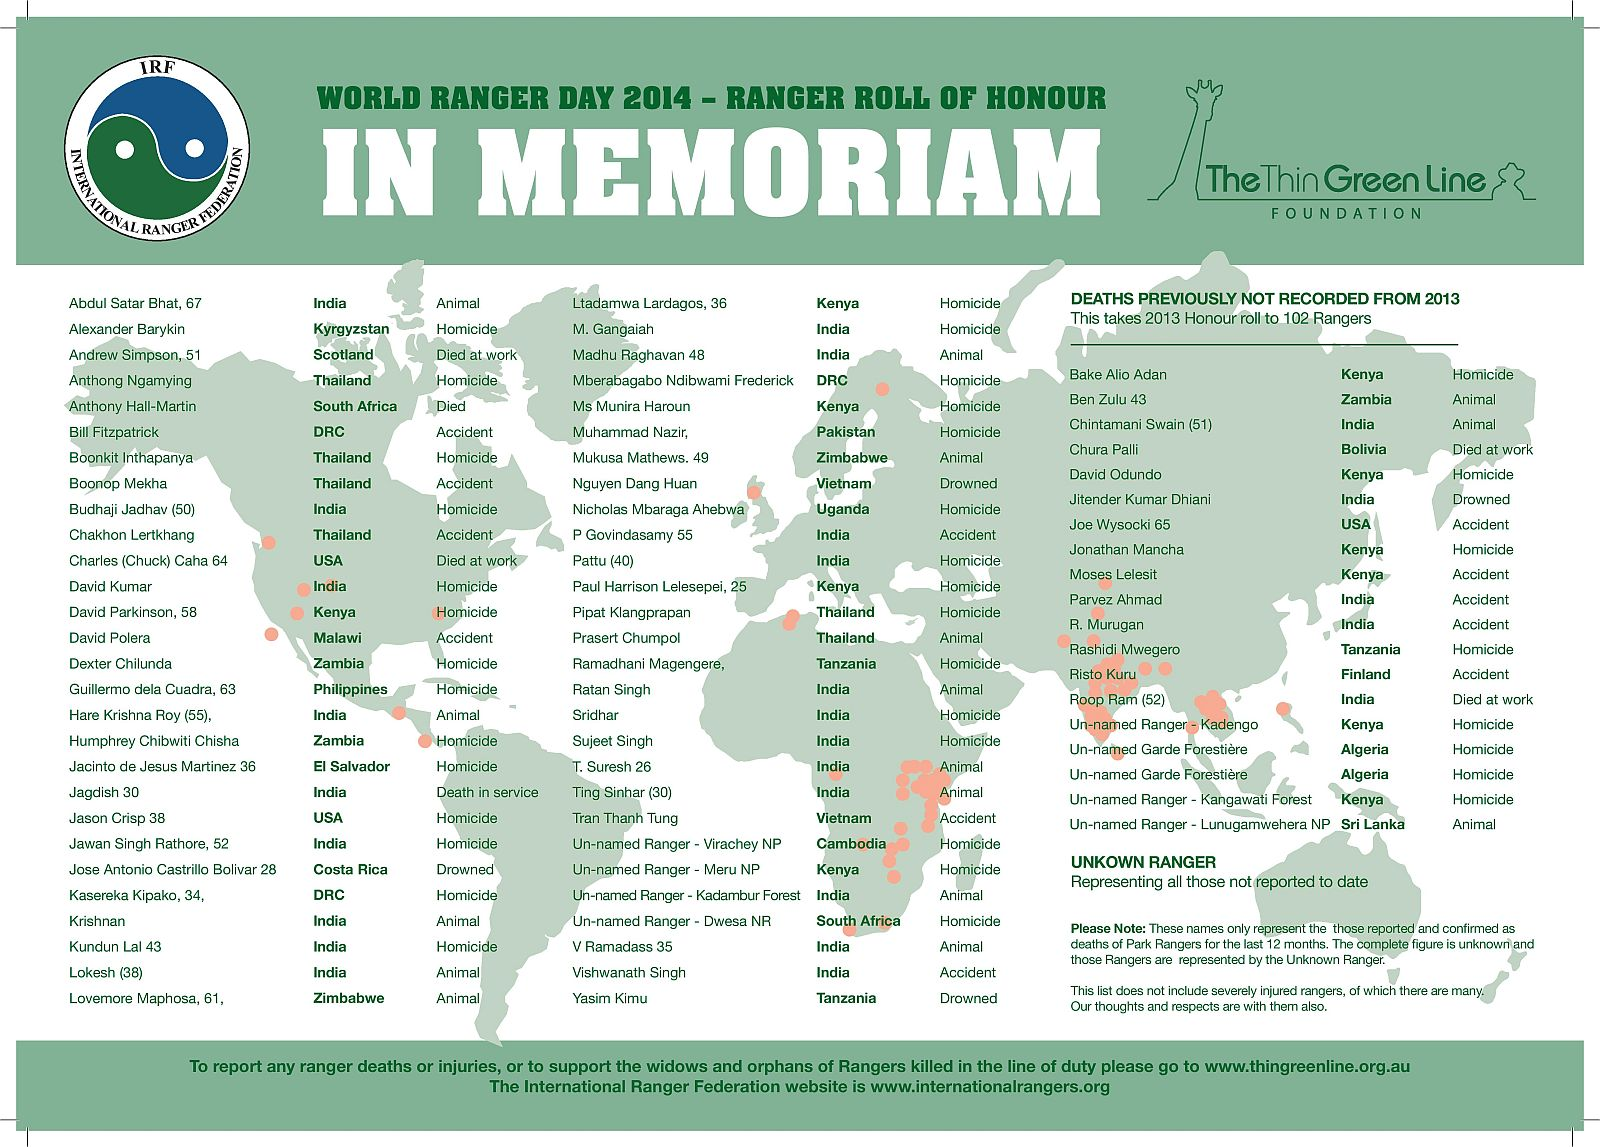 World Ranger Day roll of honour 2014